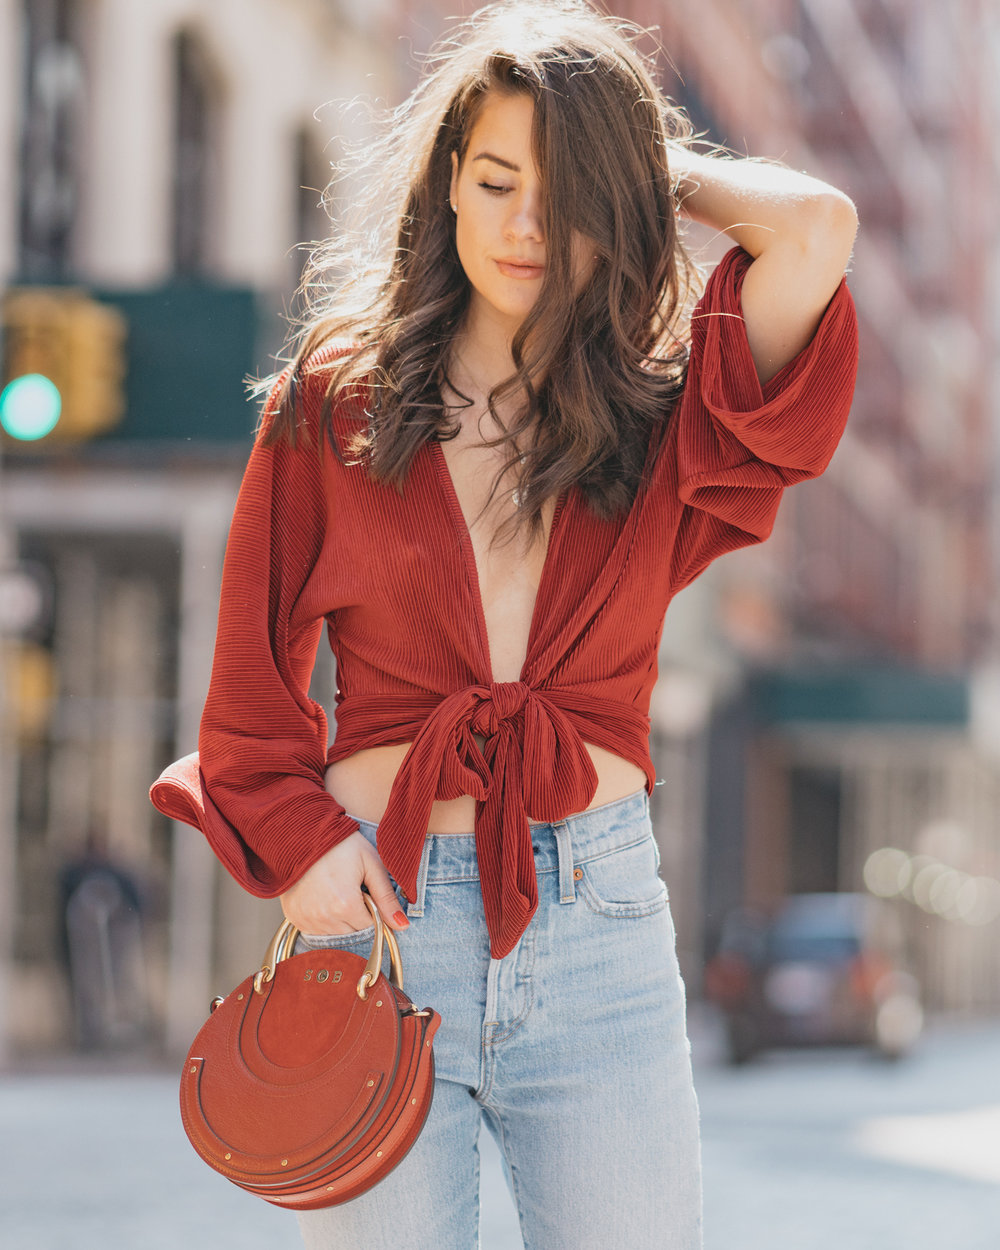 Red-Kimono-Tie-Front-Top-Ruby-Chloe-Pixie-Leather-Crossbody-Bag-15.jpg